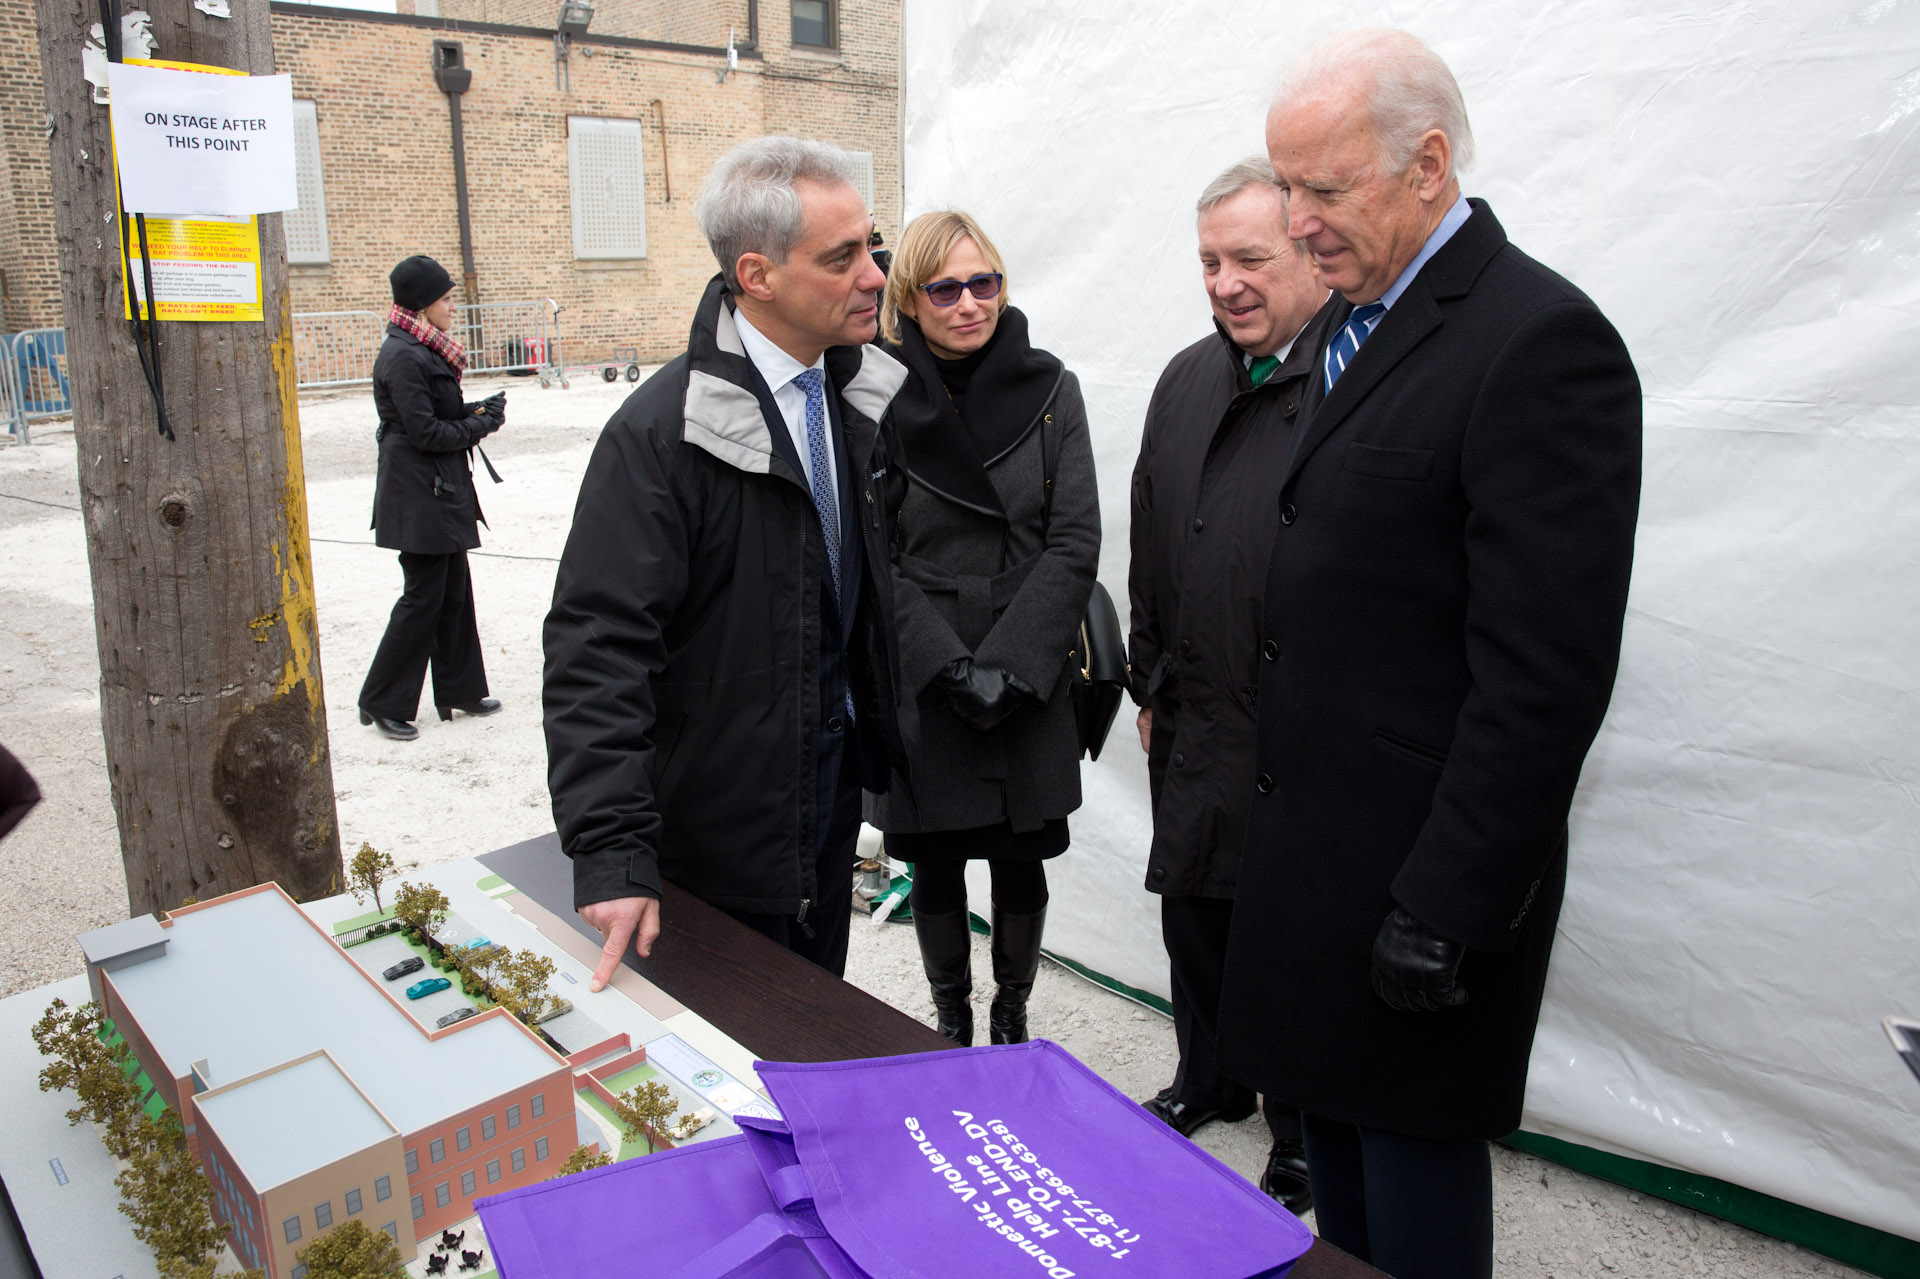 Vice President Joe Biden with Sen. Dick Durbin, Chicago Mayor Rahm Emanuel and his wife Amy Rule backstage at the groundbreaking of a shelter for battered women